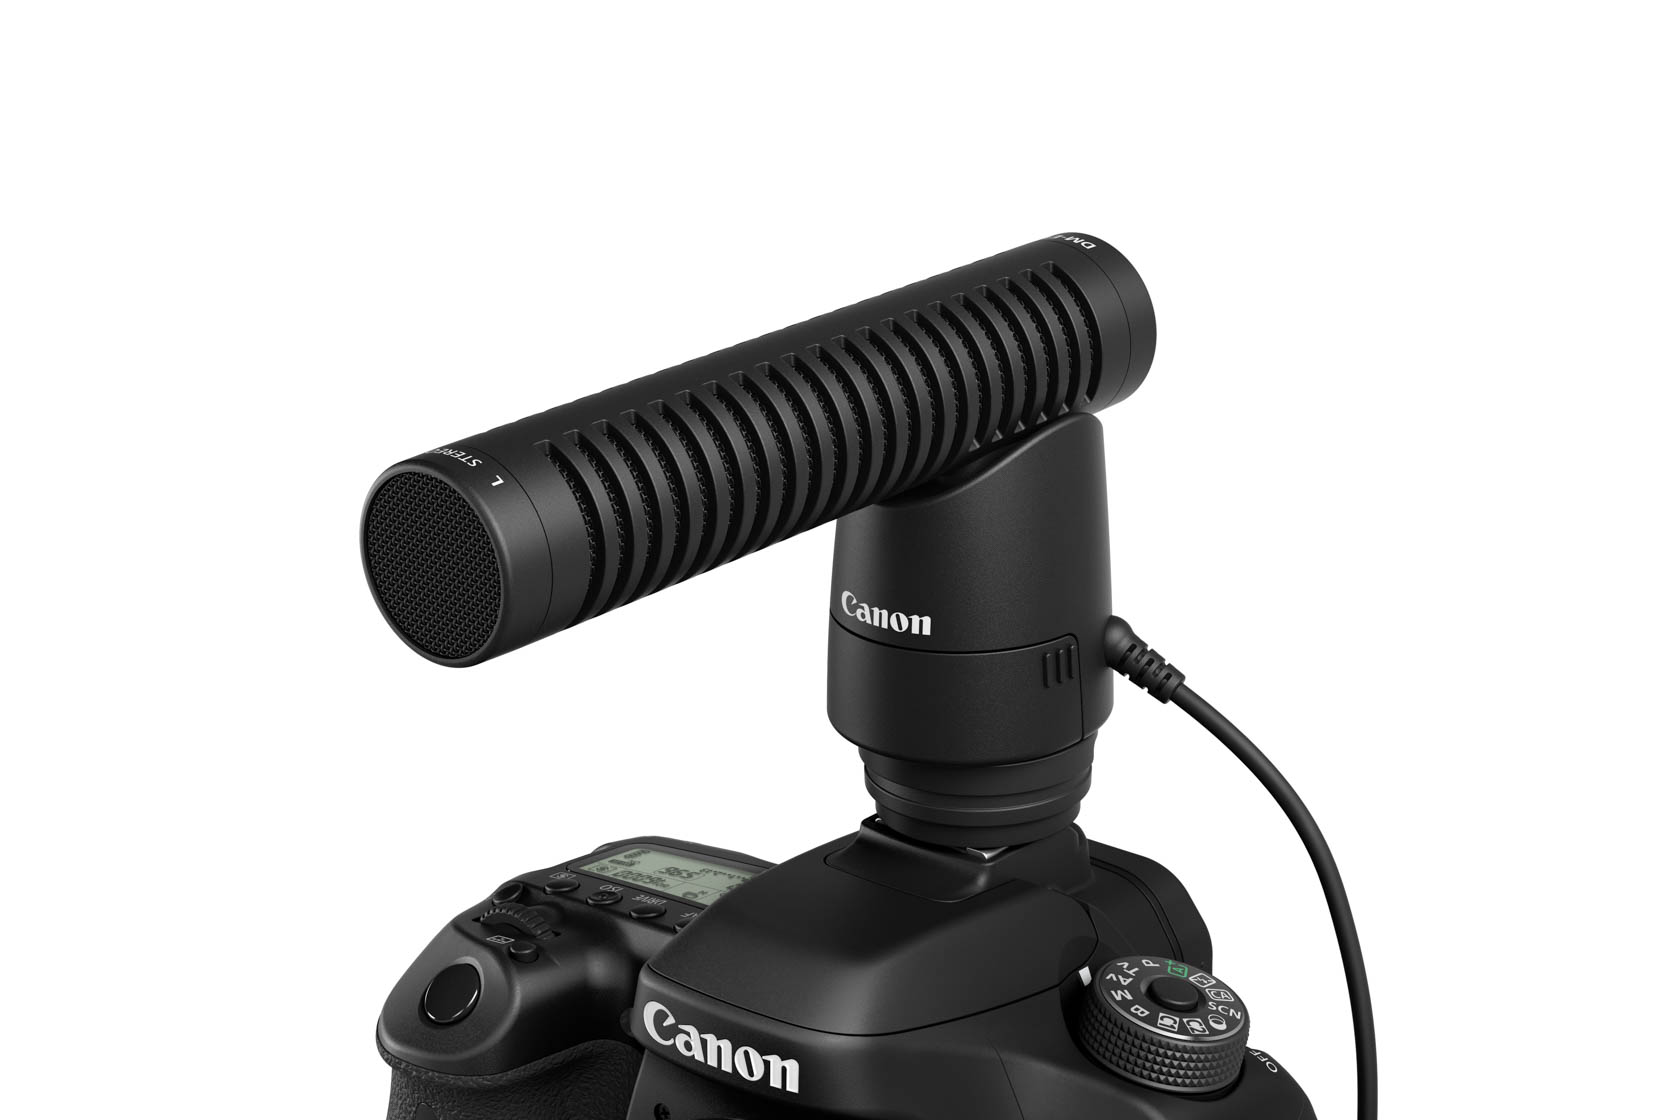 captured oCanon Directional Stereo Microphone DM-E1